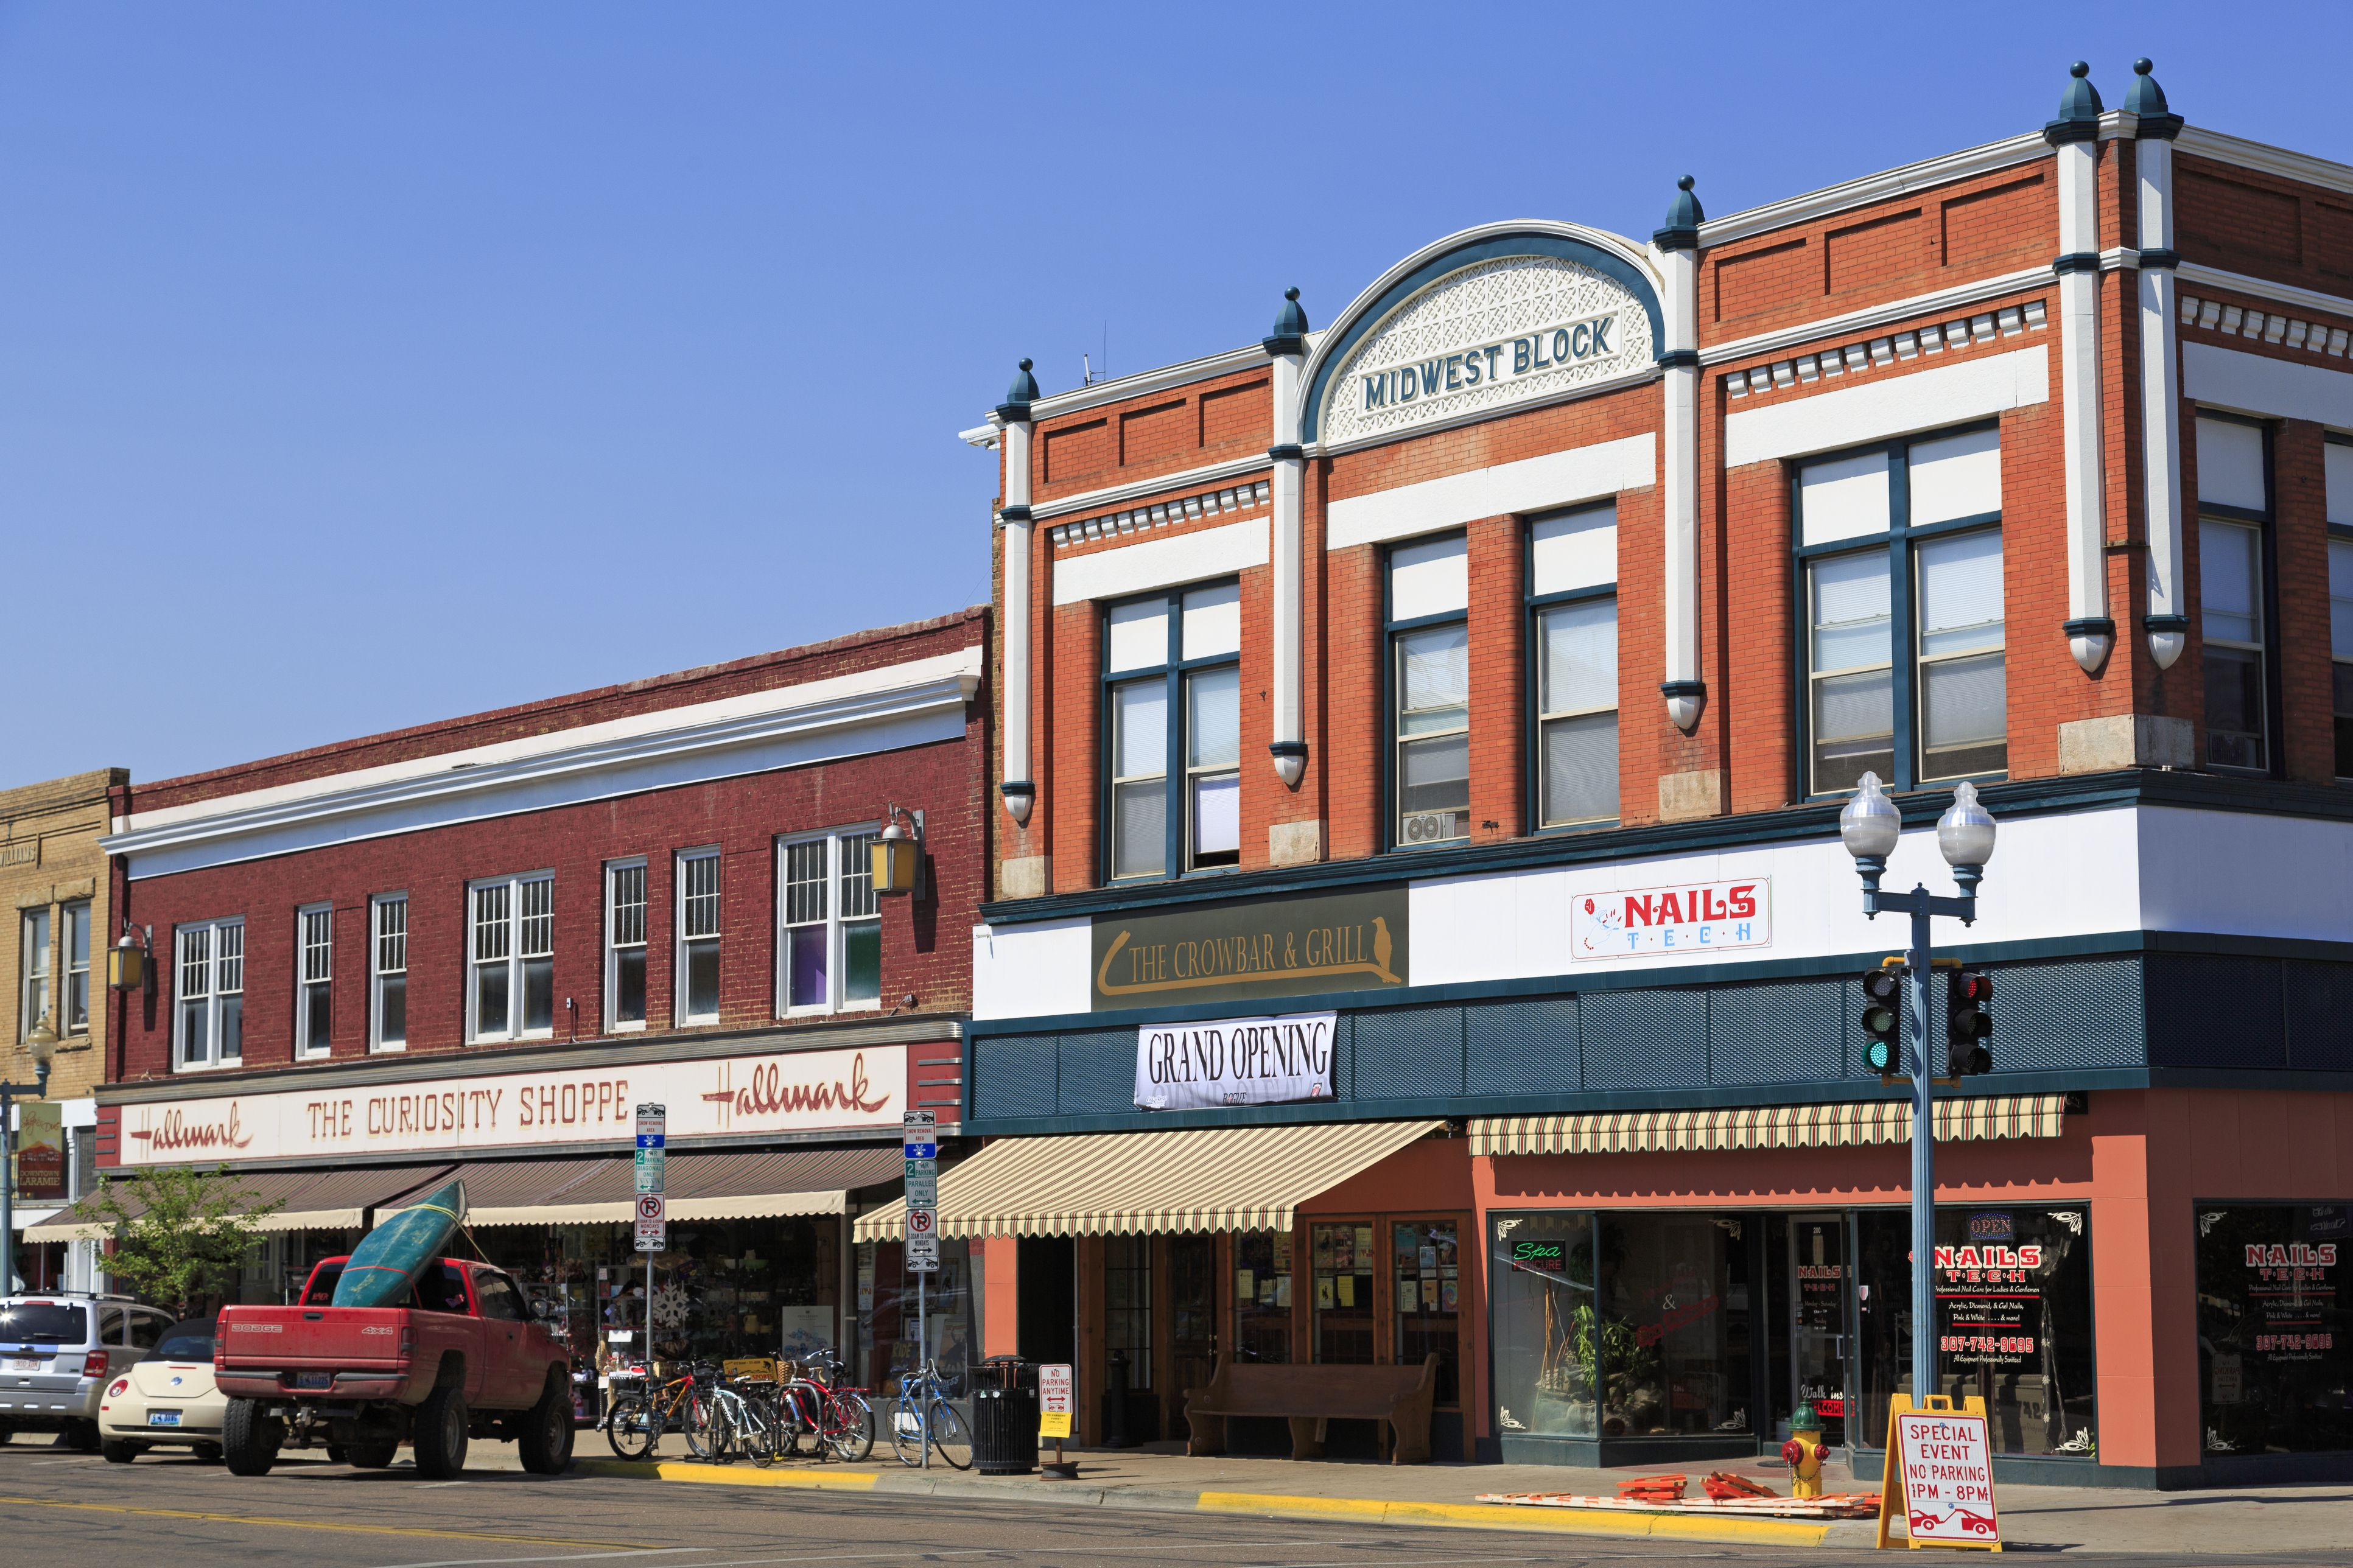 Downtown stores in Laramie, WY